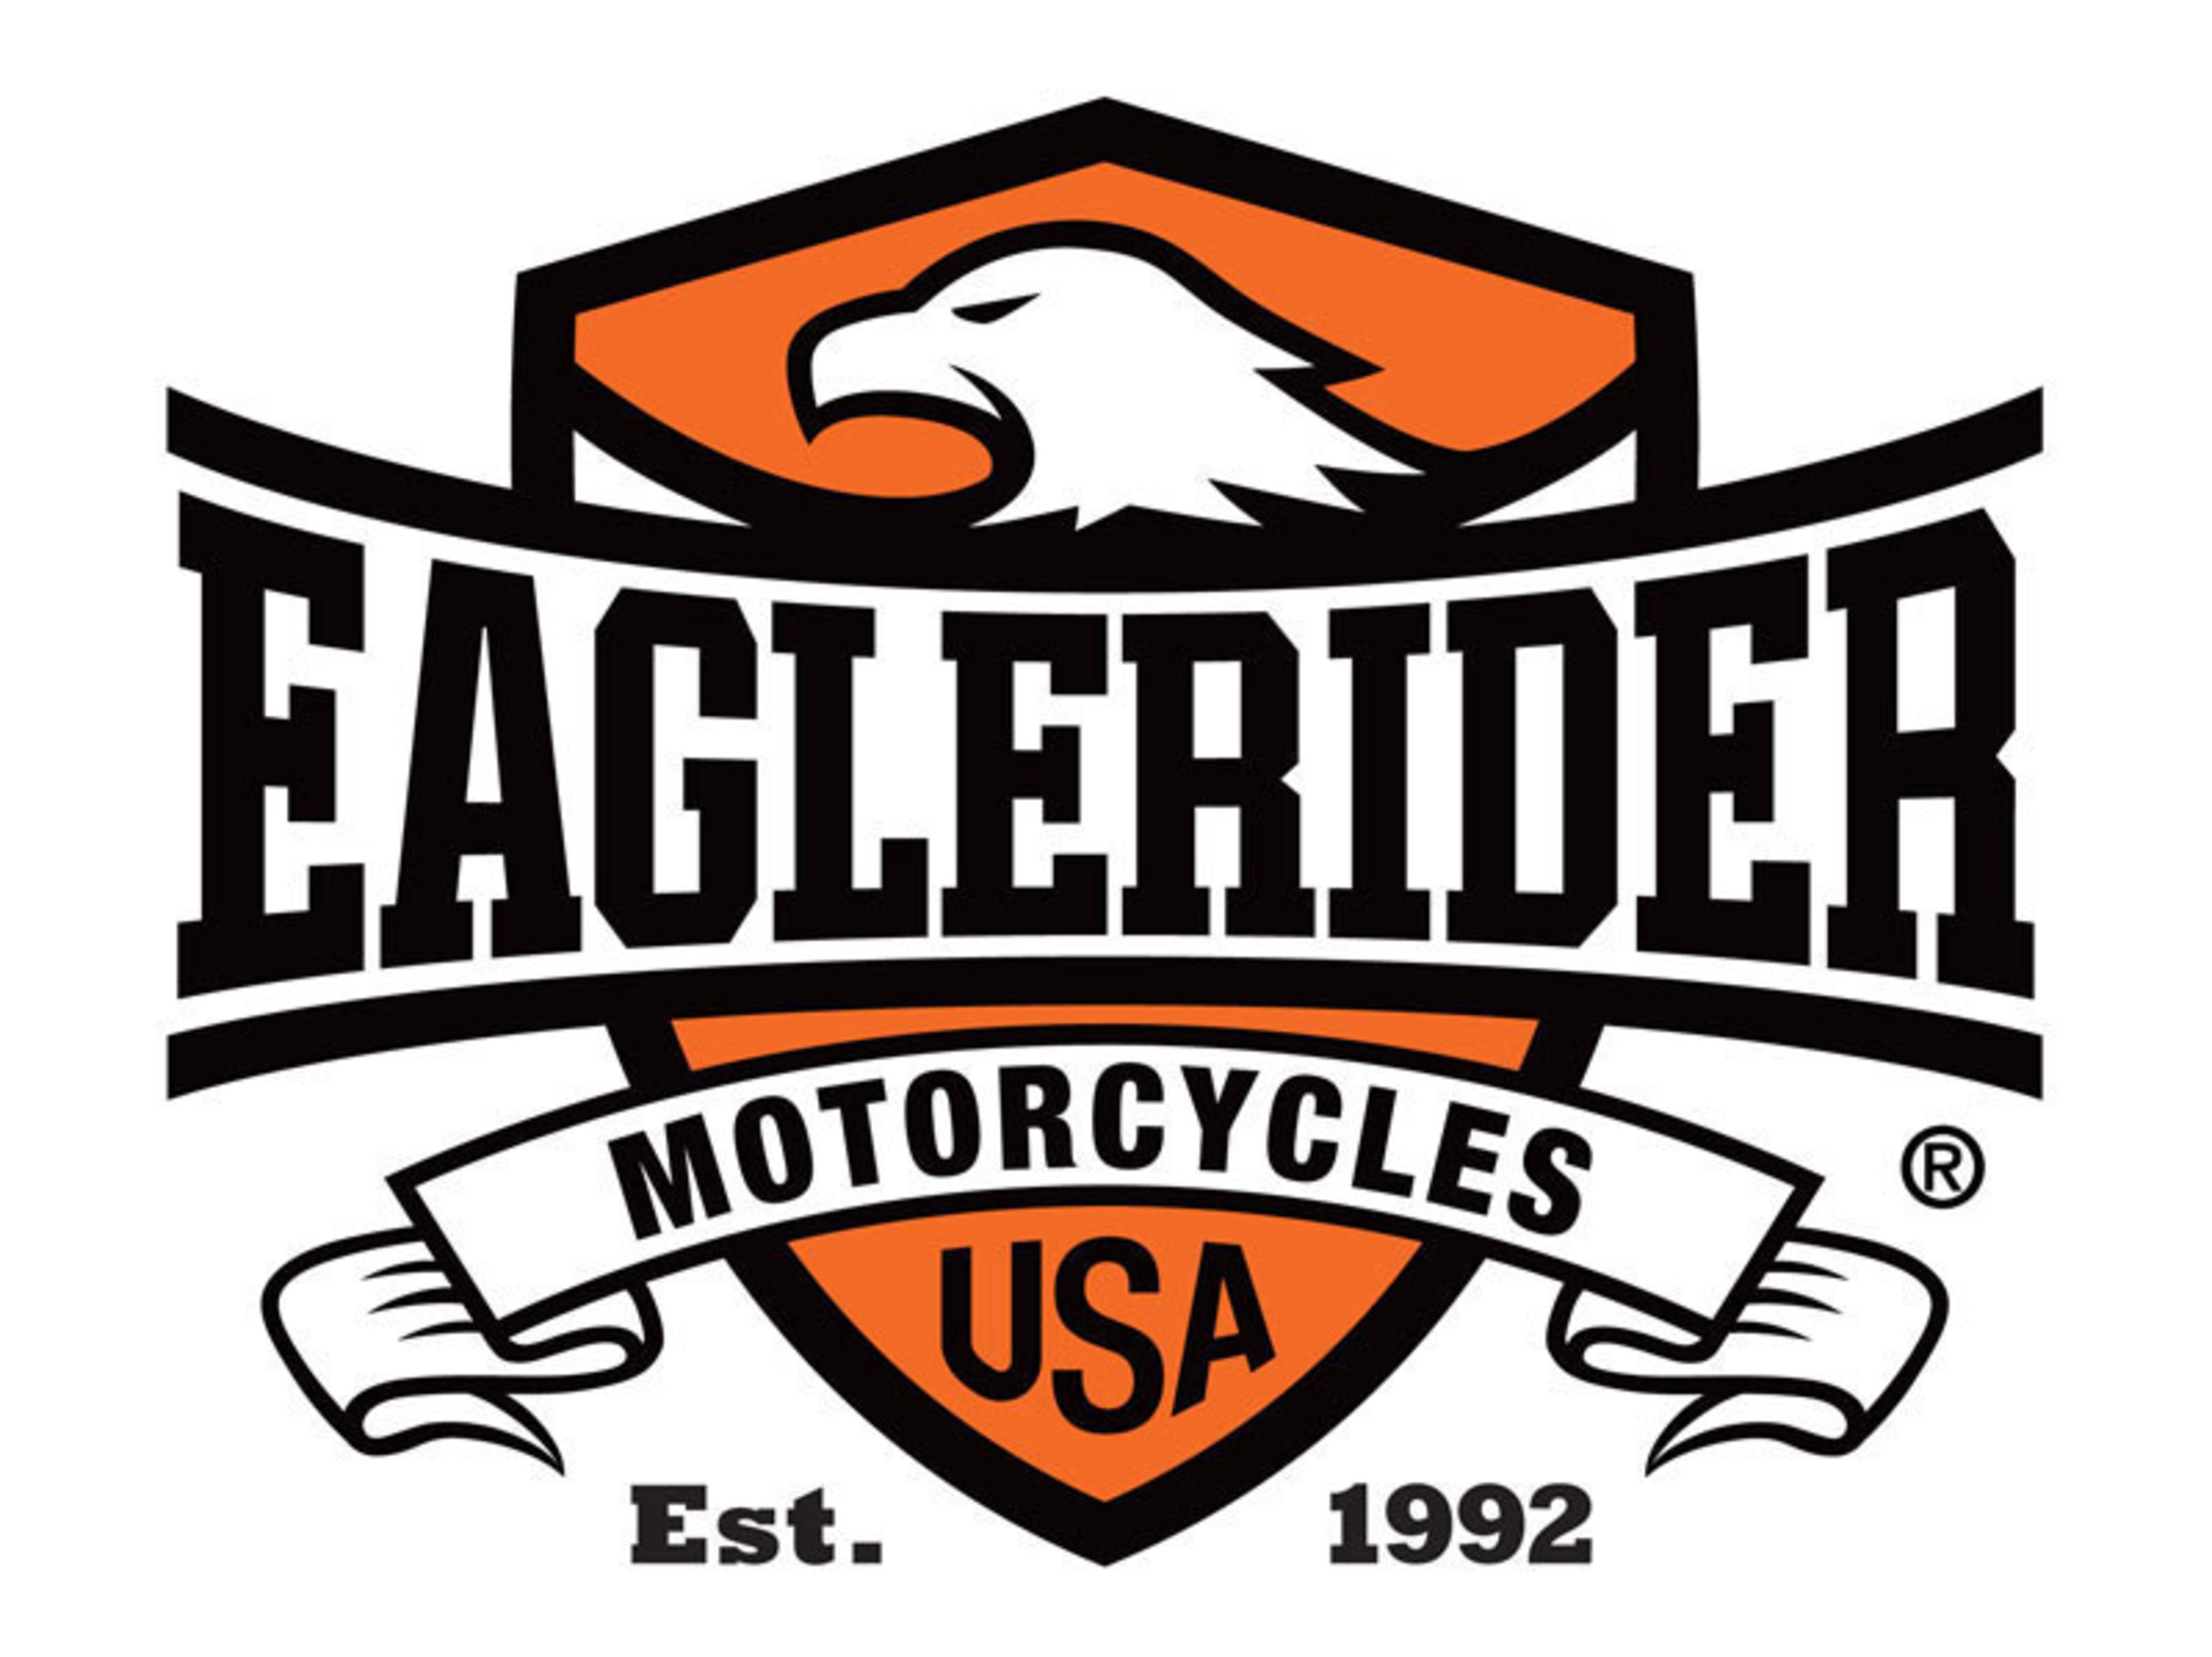 EagleRider's Event Outposts Encompass the United States